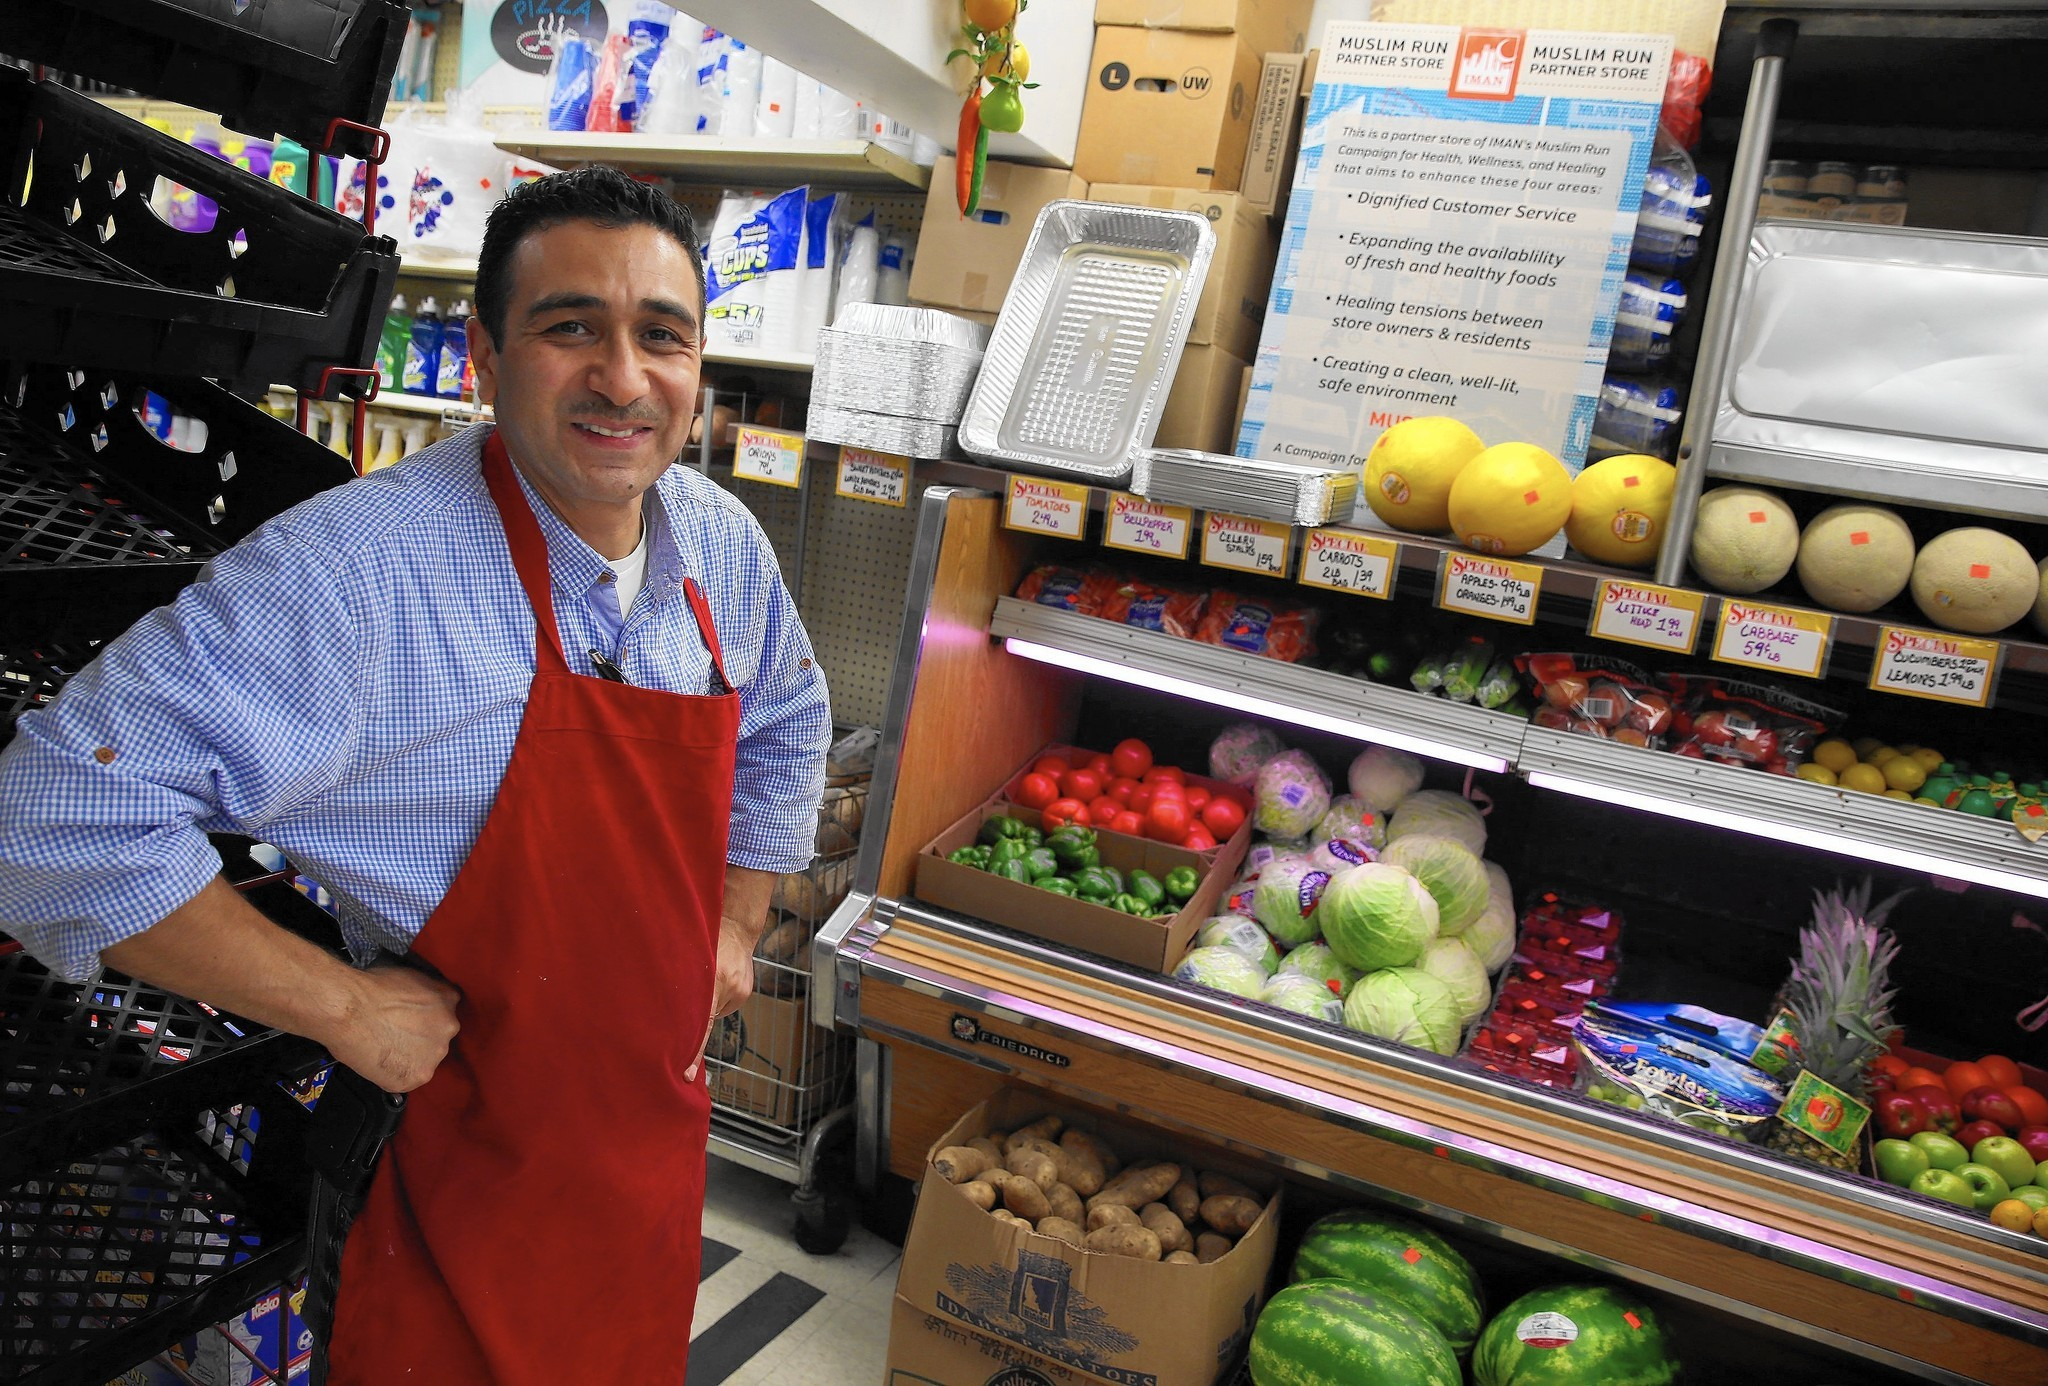 Access to healthier choices can mean healthier living